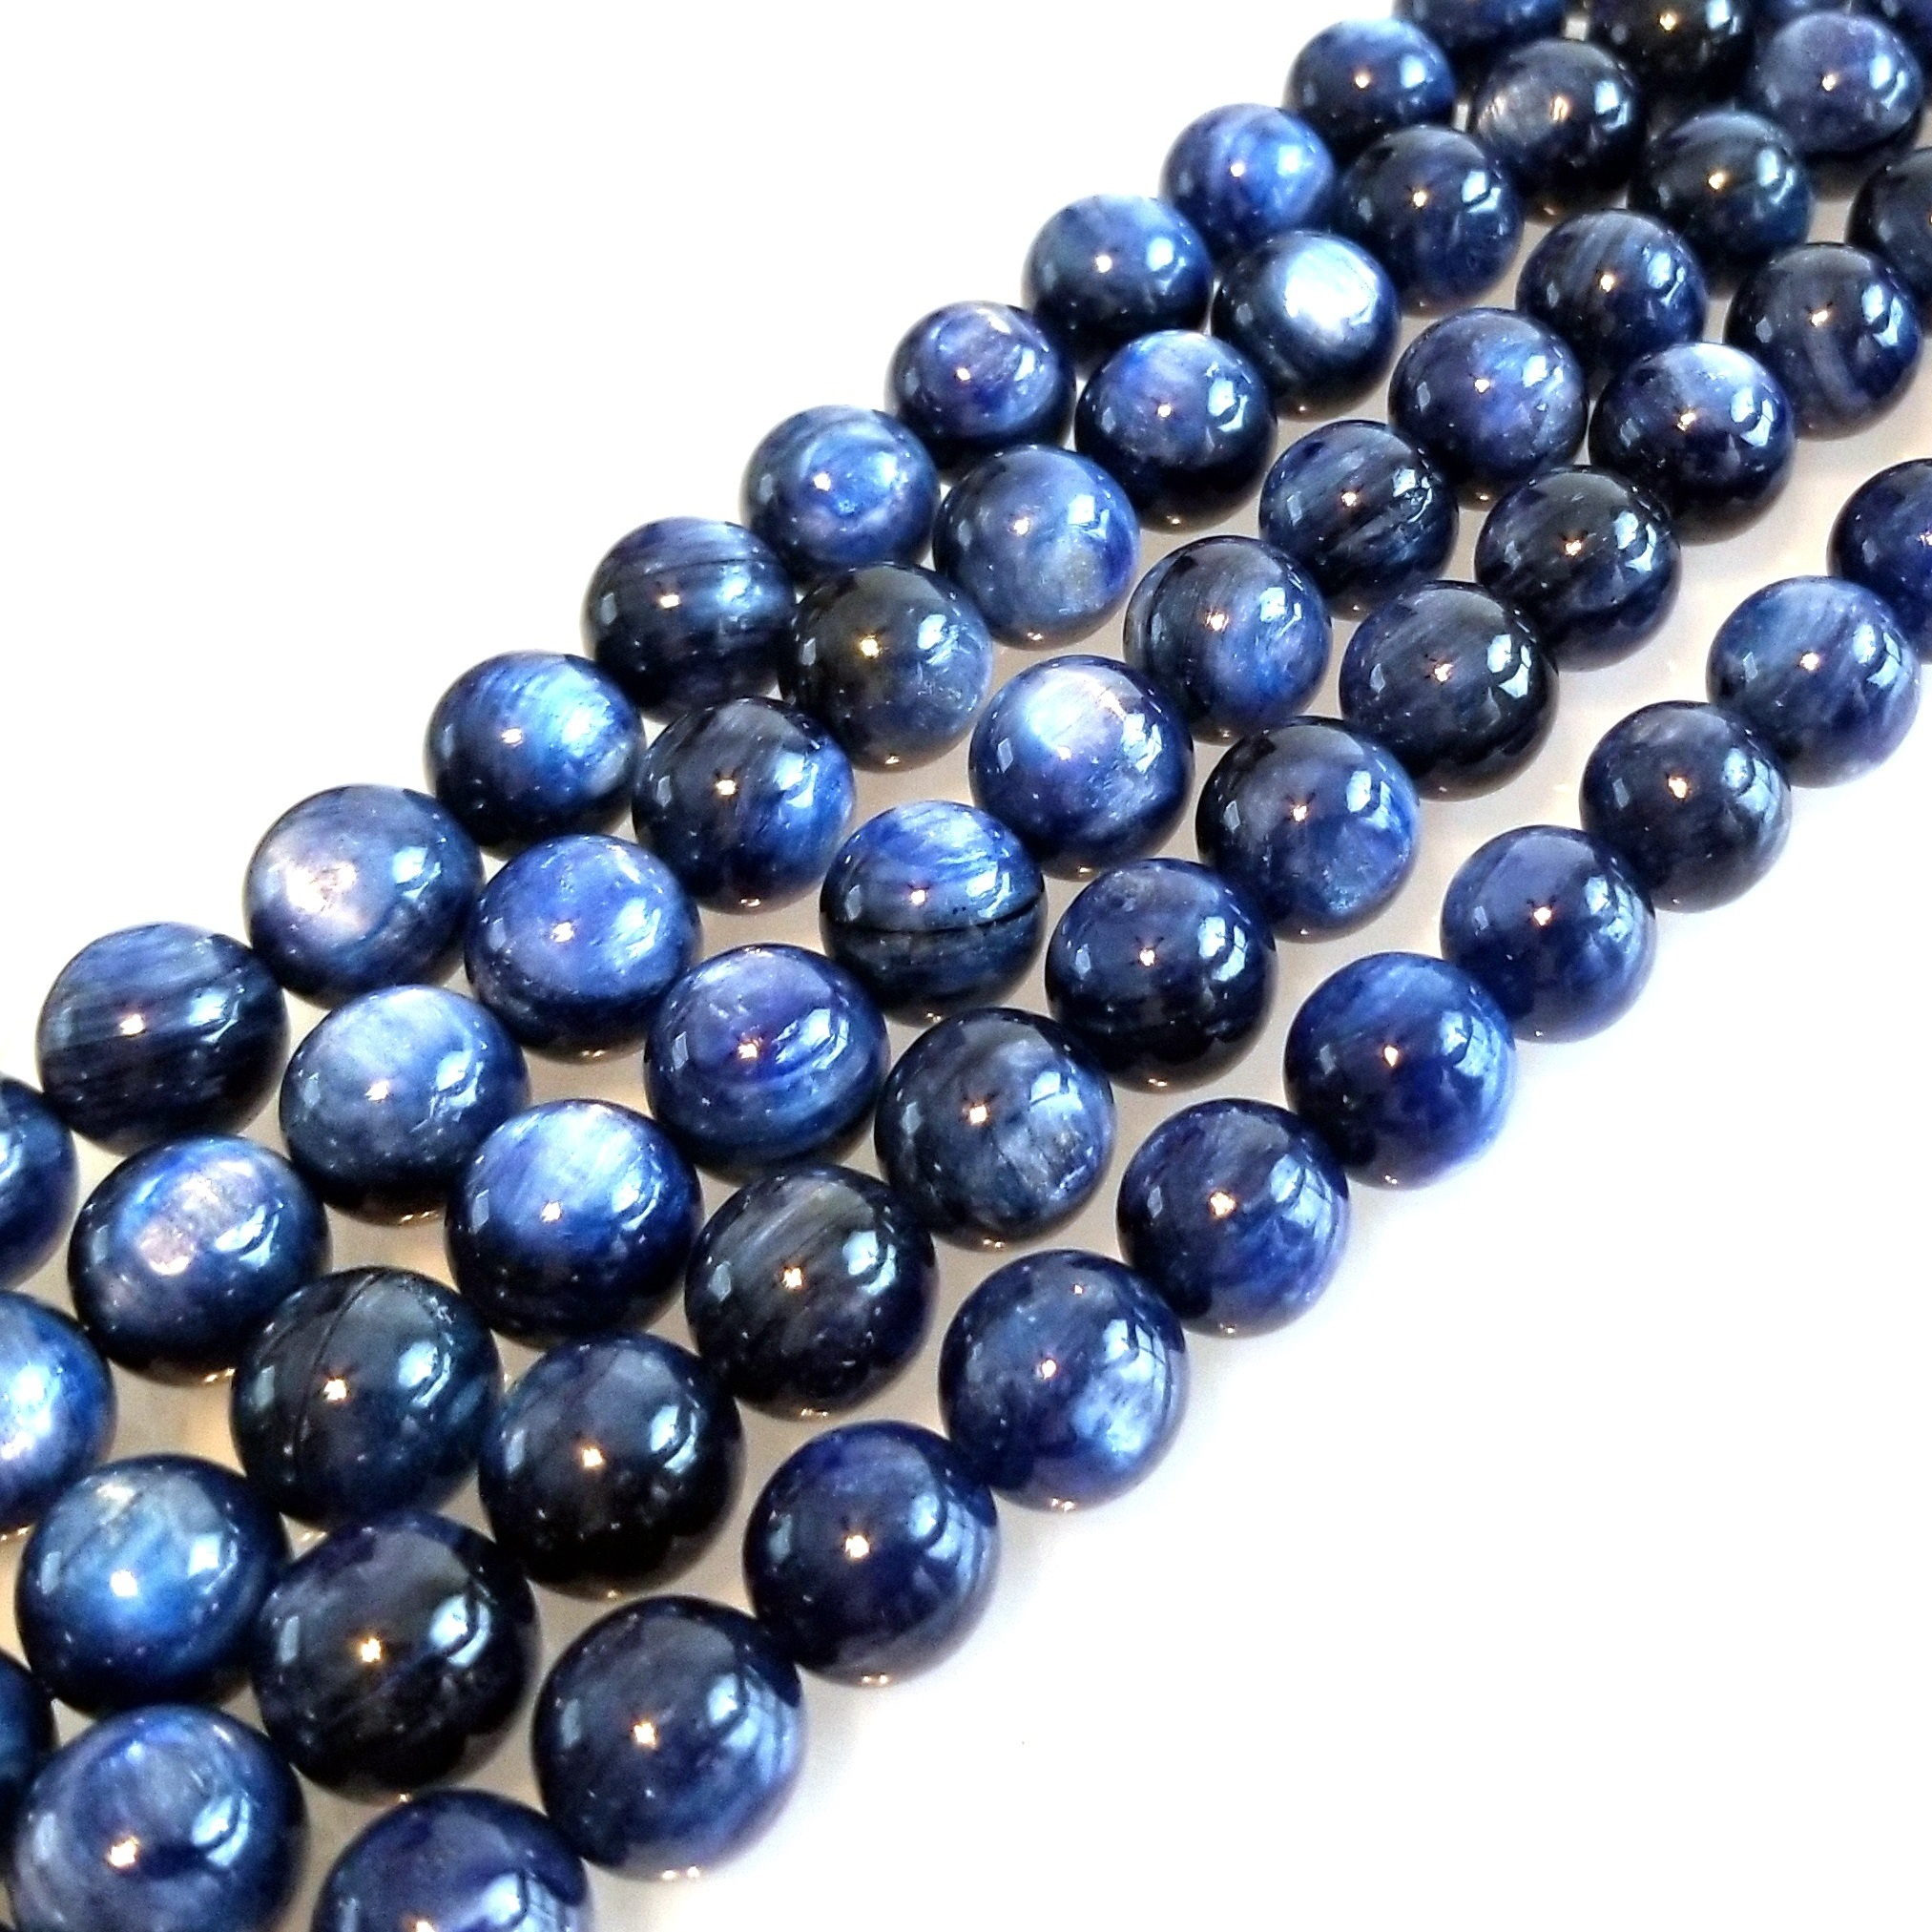 Kyanite Gemstone Beads